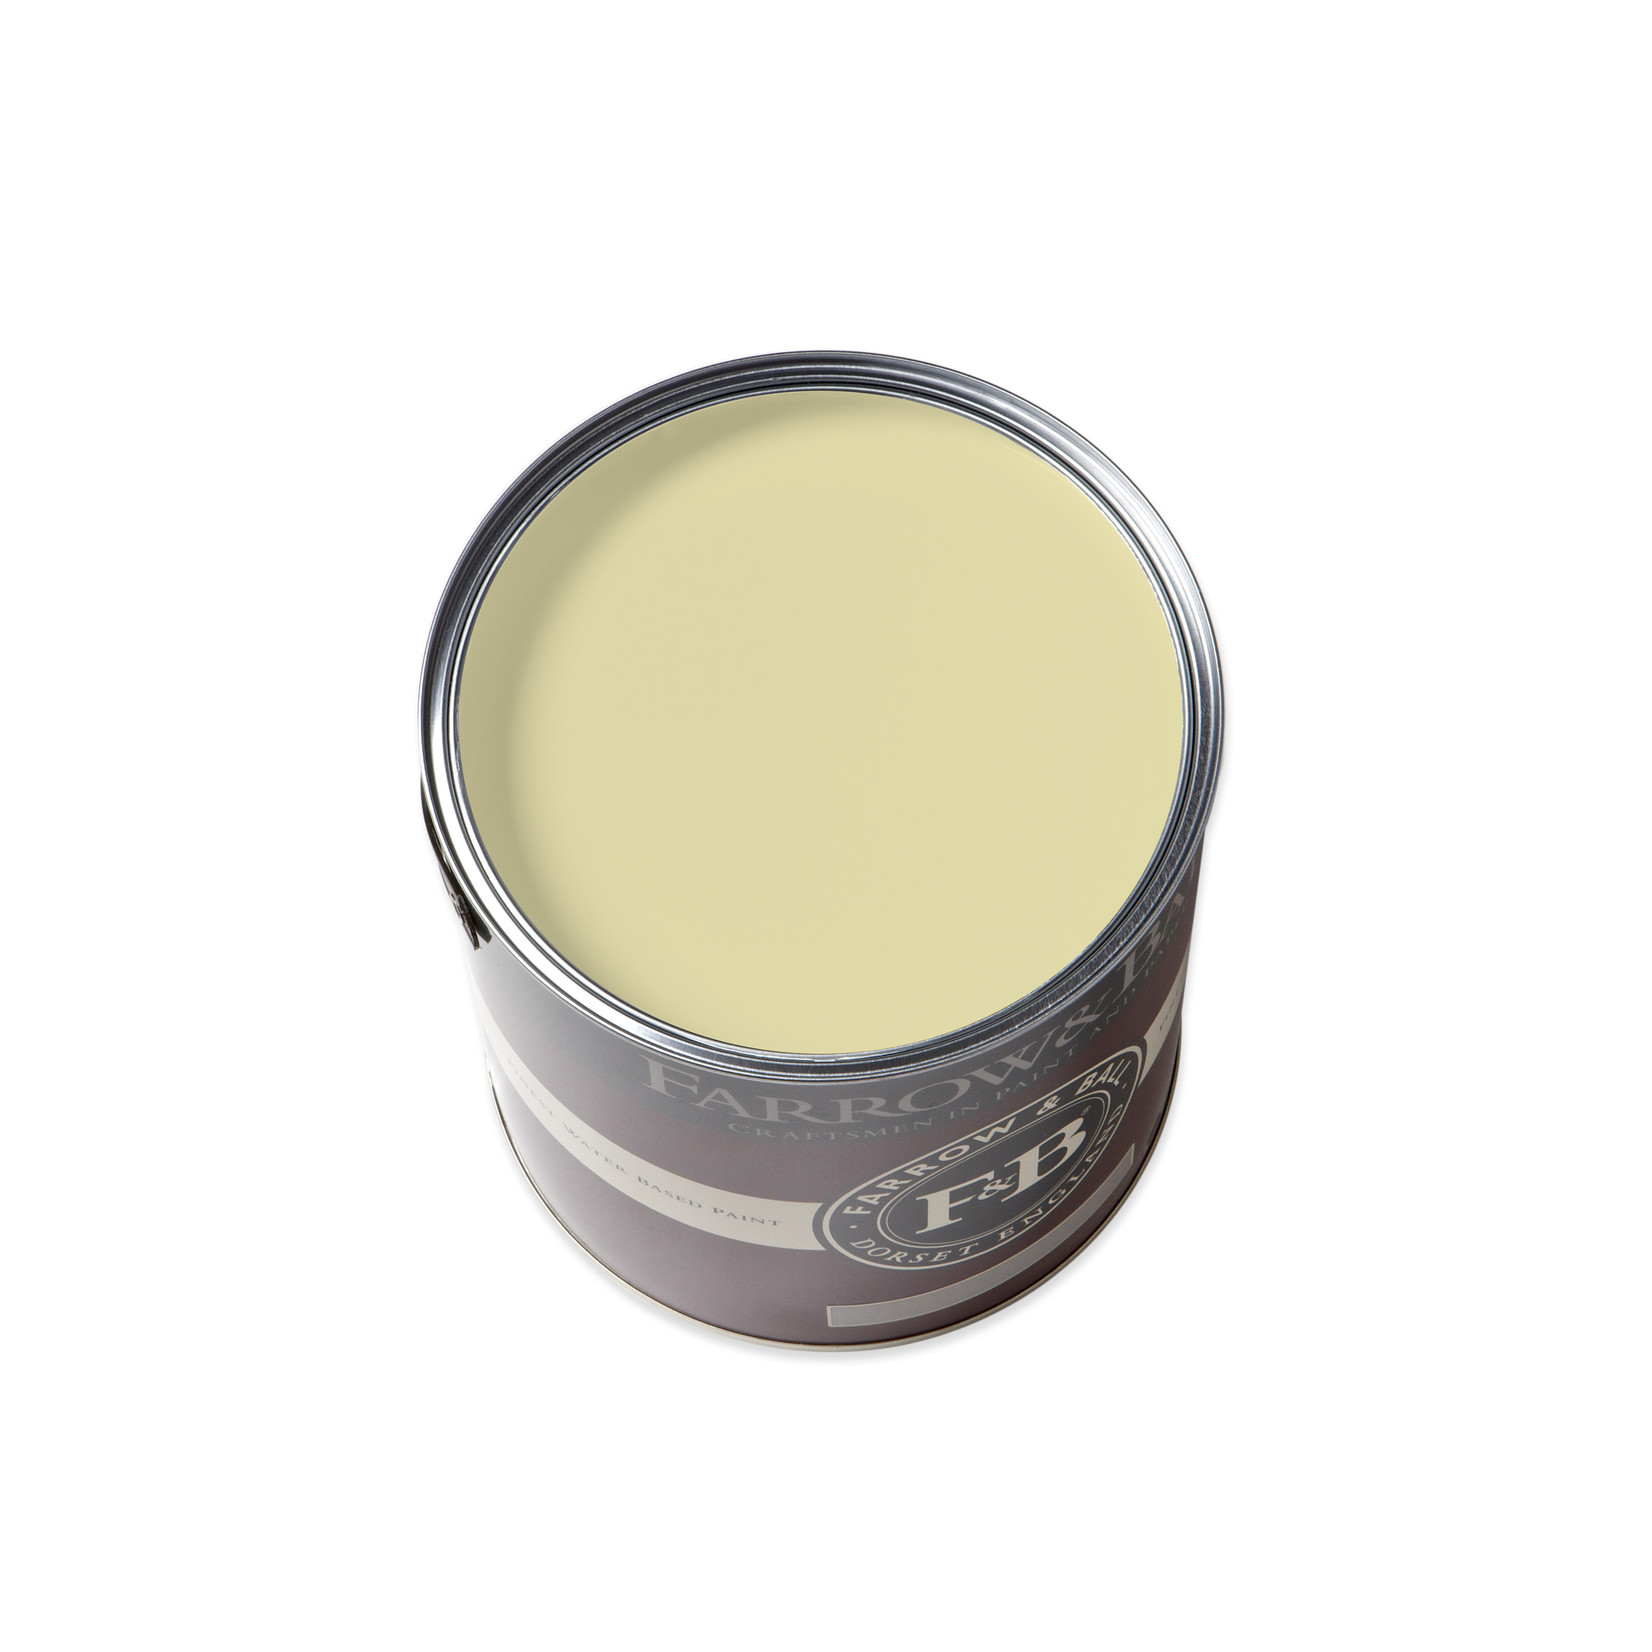 FARROW & BALL PALE HOUND - No. 71